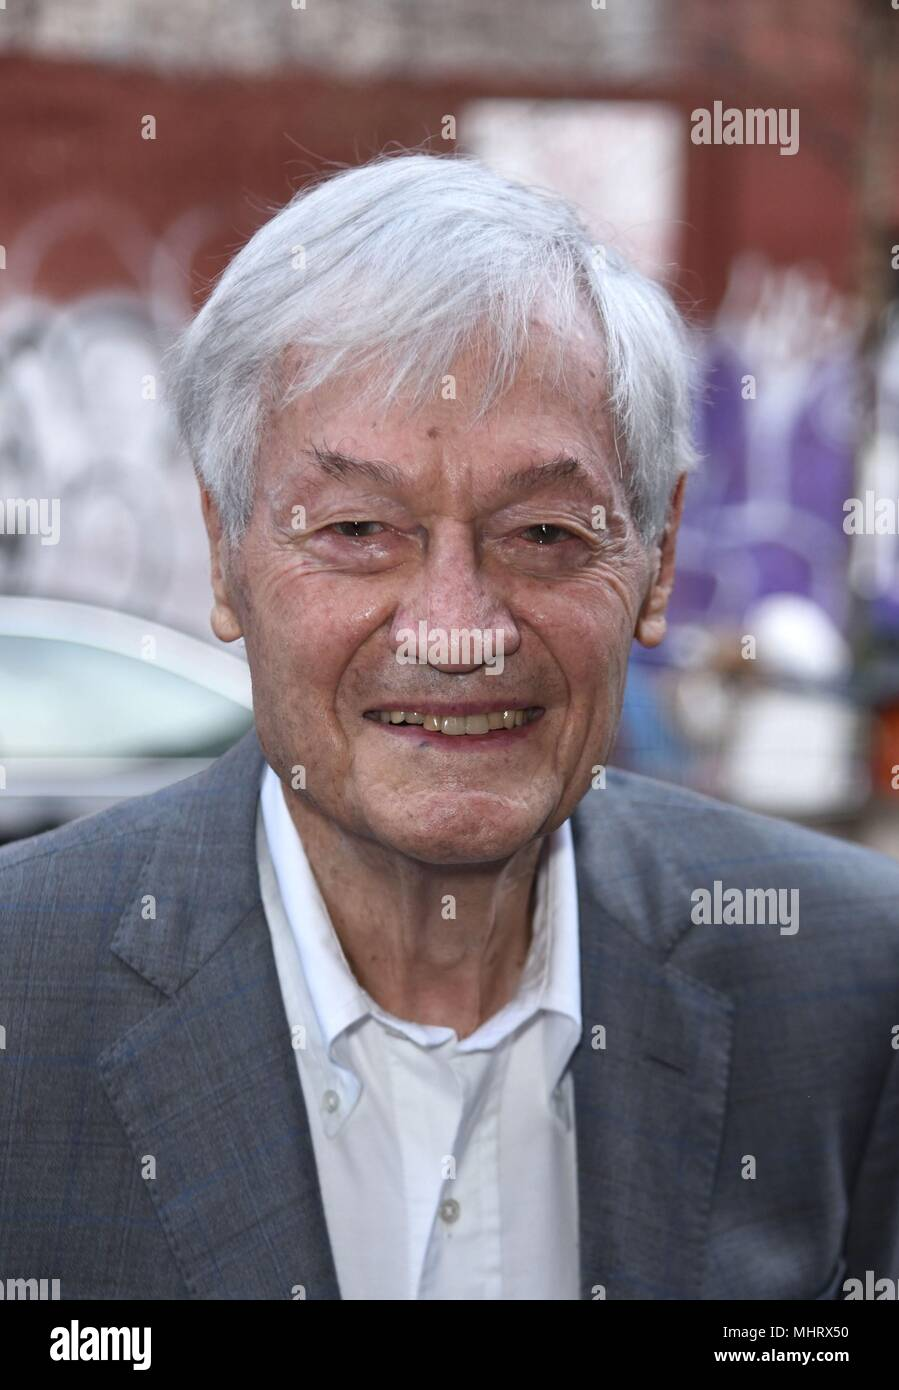 New York, NY, USA. 3rd May, 2018. Roger Corman, appears at the Metrograph to introduce his film THE INTRUDER followed by an audience Q&A out and about for Celebrity Candids - THU, New York, NY May 3, 2018. Credit: Derek Storm/Everett Collection/Alamy Live News - Stock Image